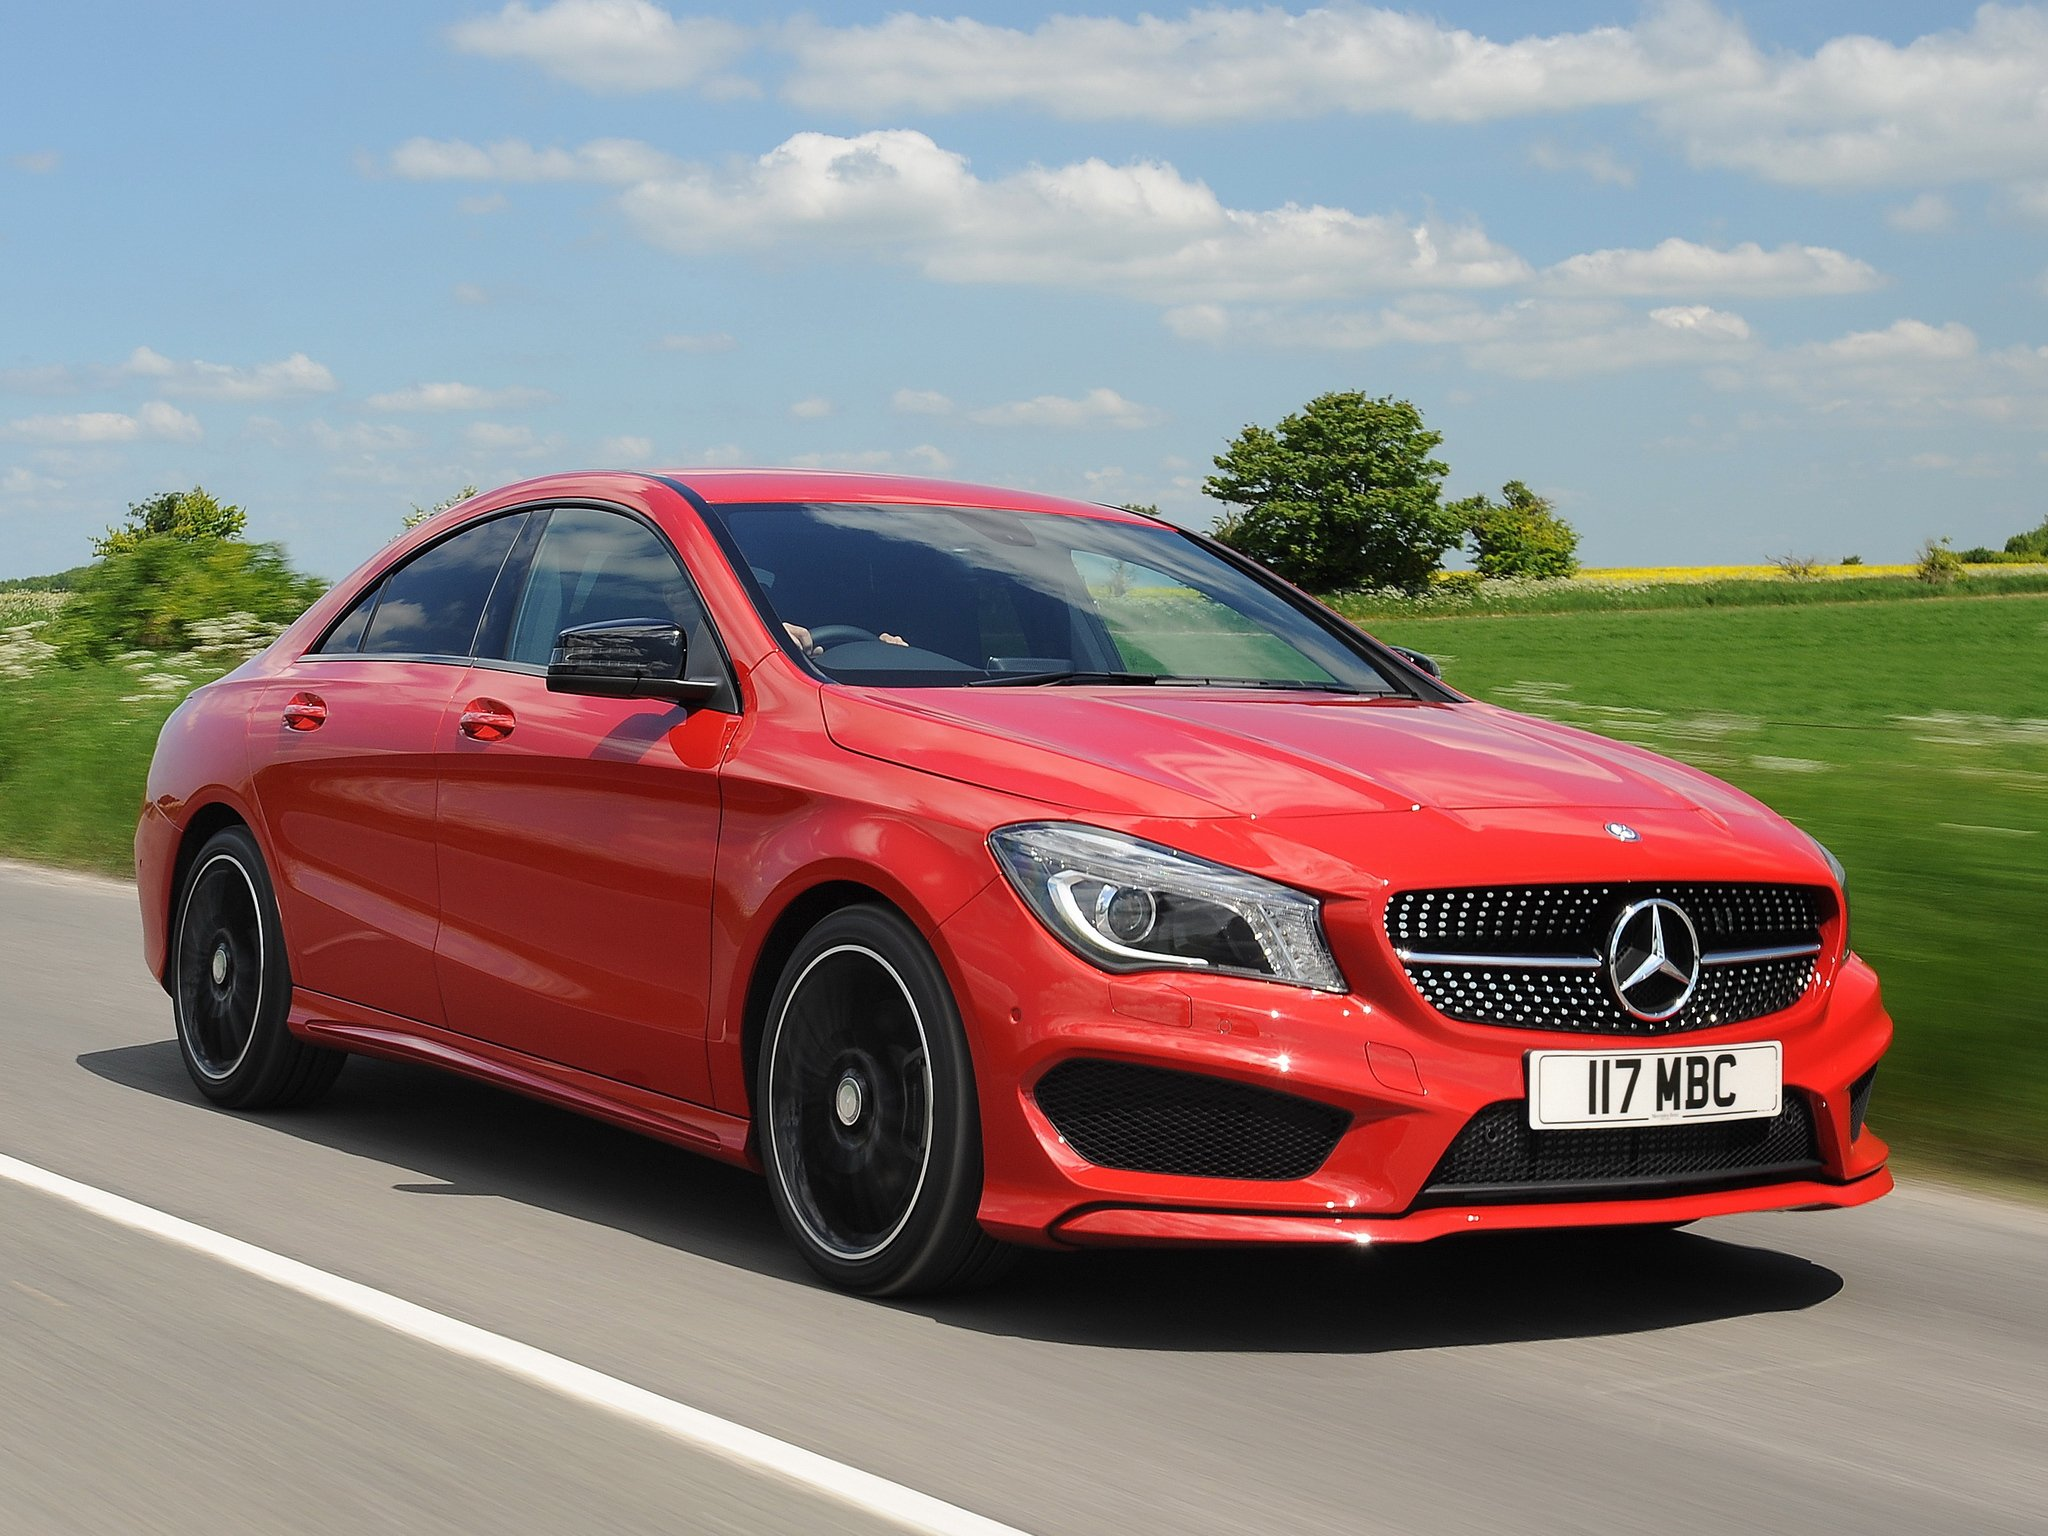 mercedes benz cla 220 cdi amg sports package uk spec c117 cars red 2013 wallpaper 2048x1536. Black Bedroom Furniture Sets. Home Design Ideas